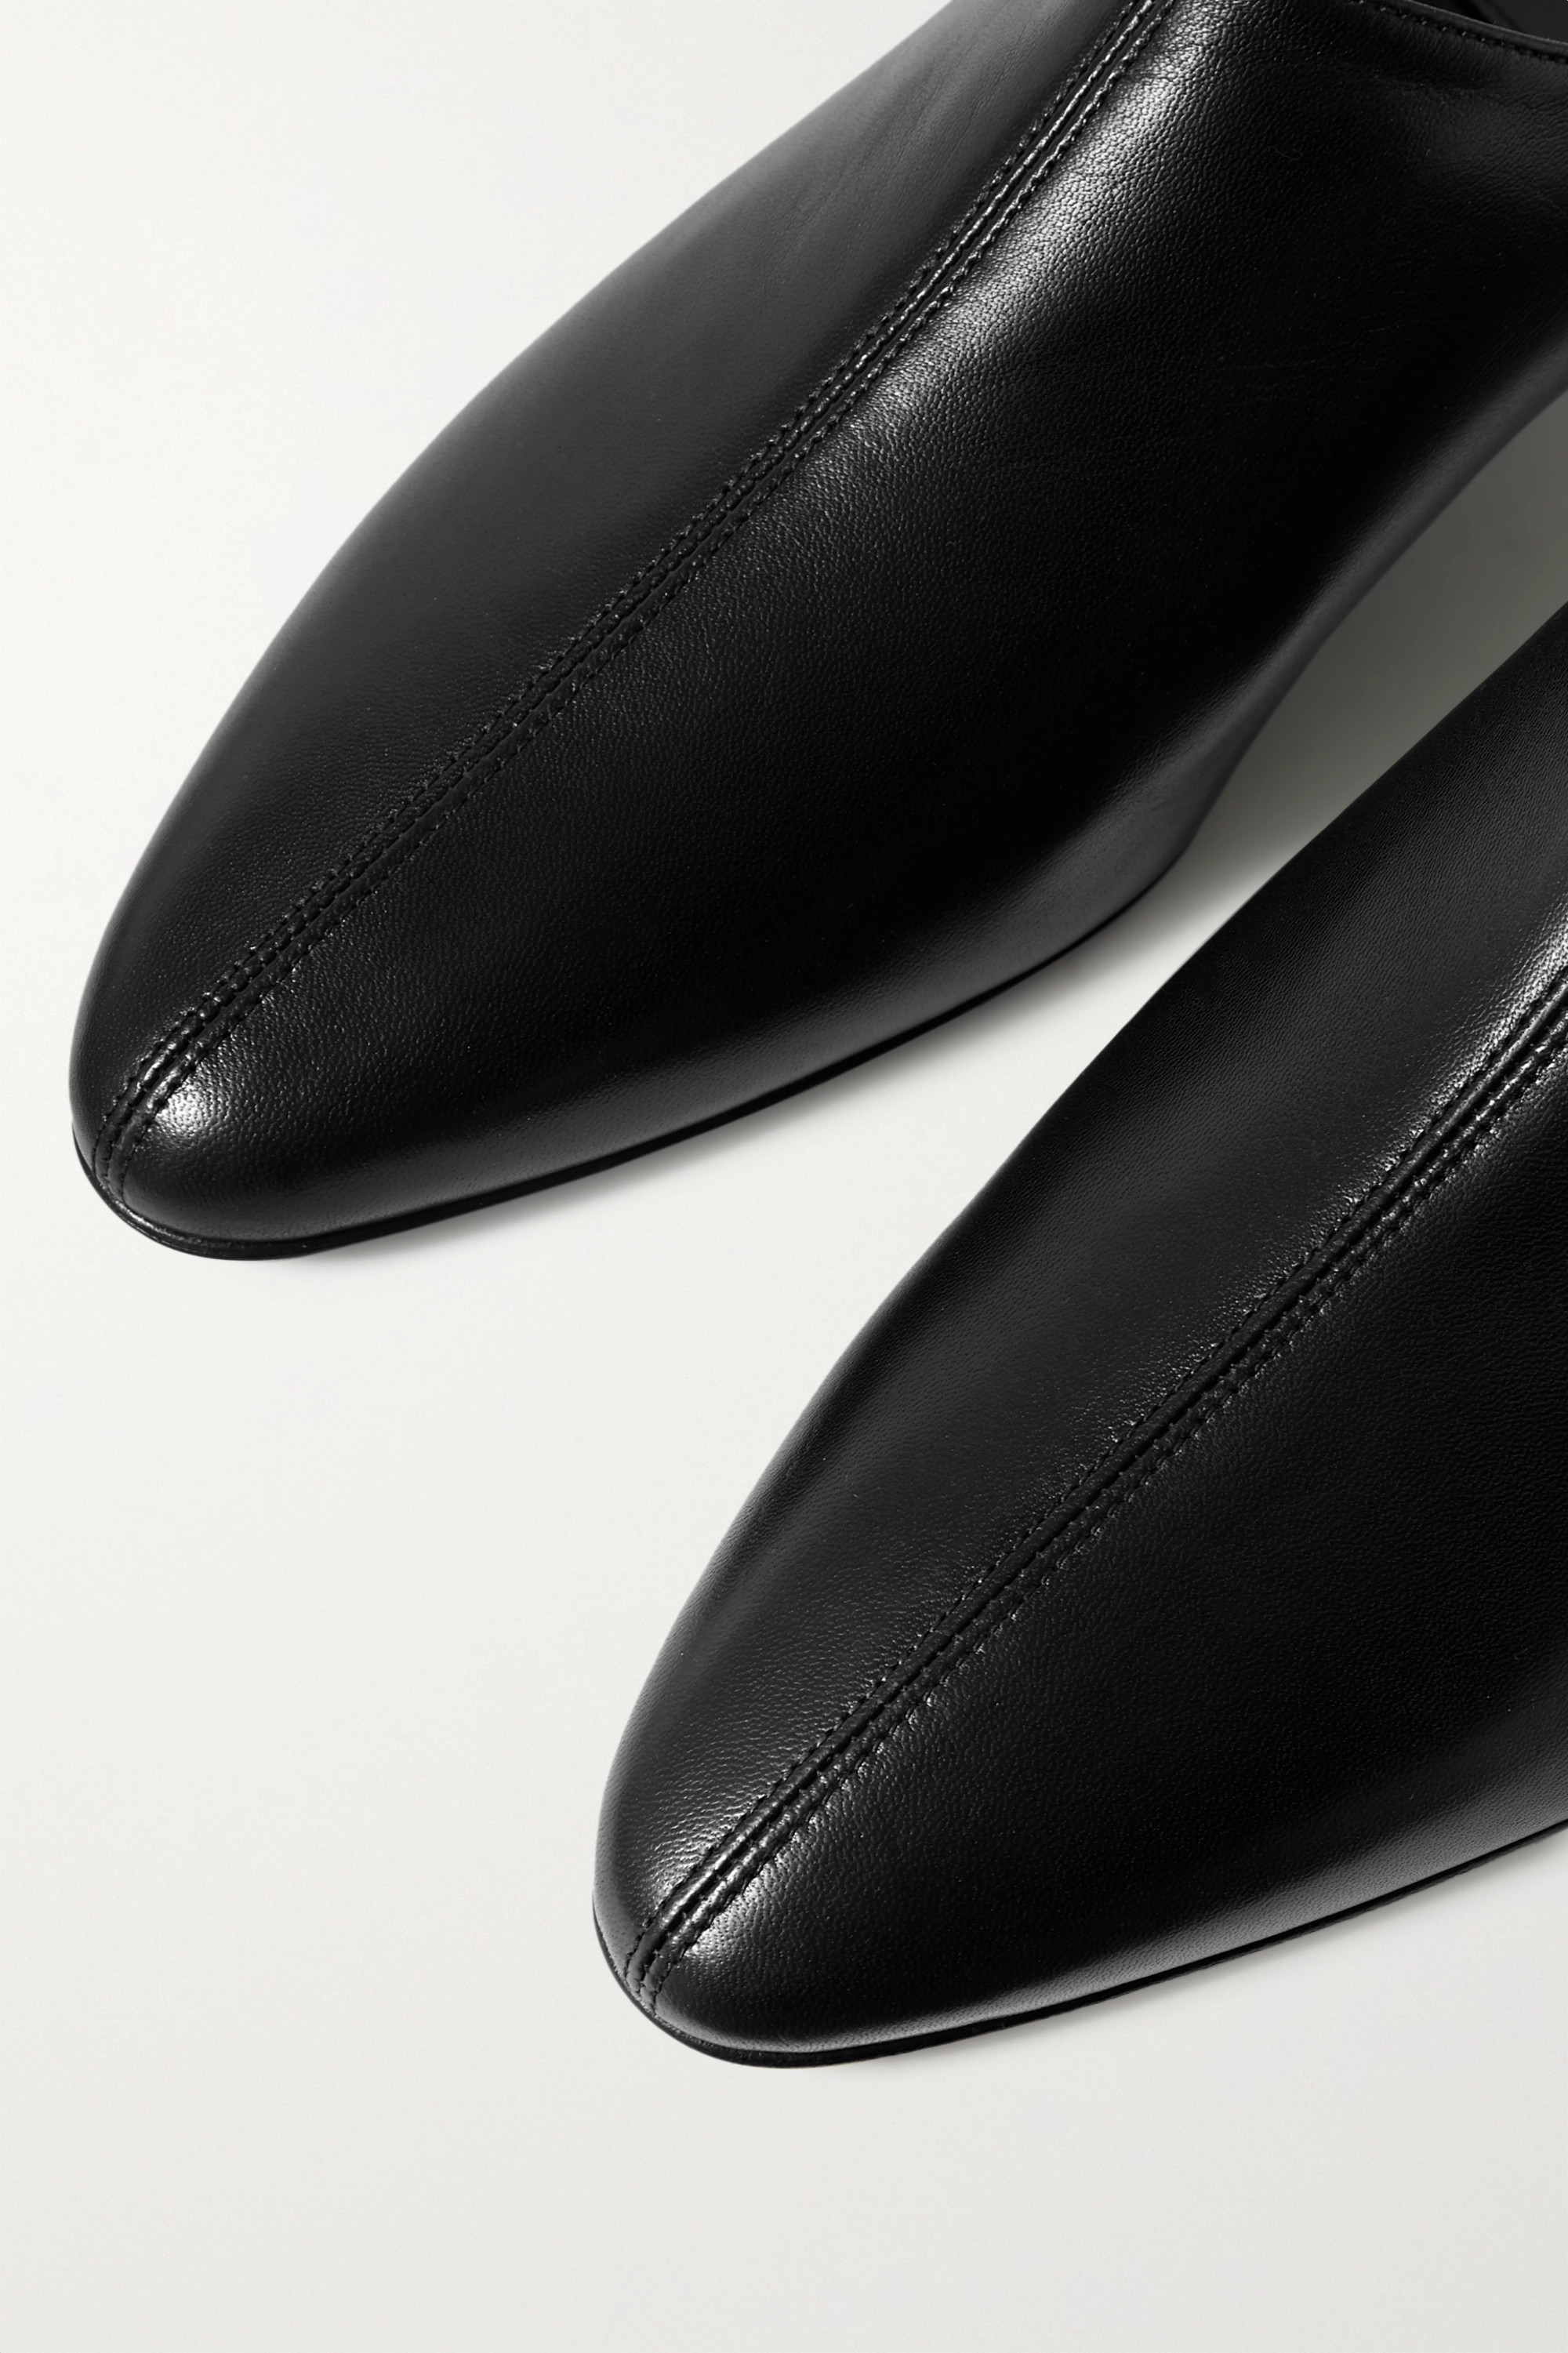 Co Leather mules